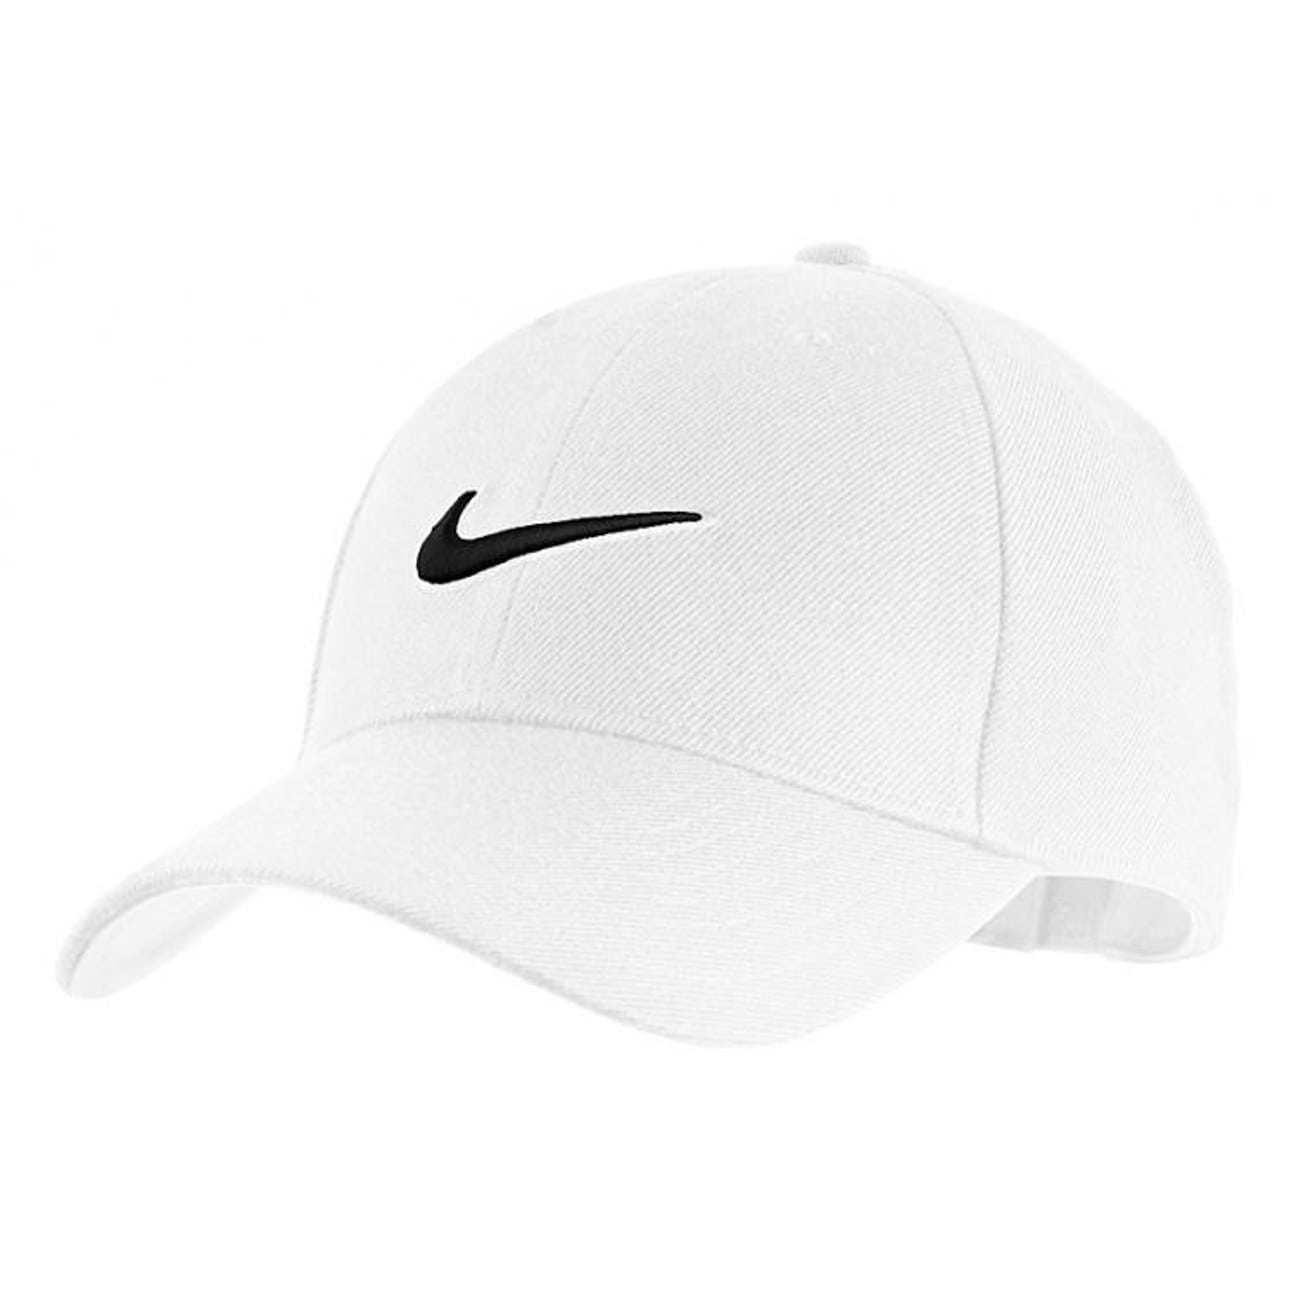 443ef3bf5db4d ... Structured Swoosh Cap by Nike - white 1 ...